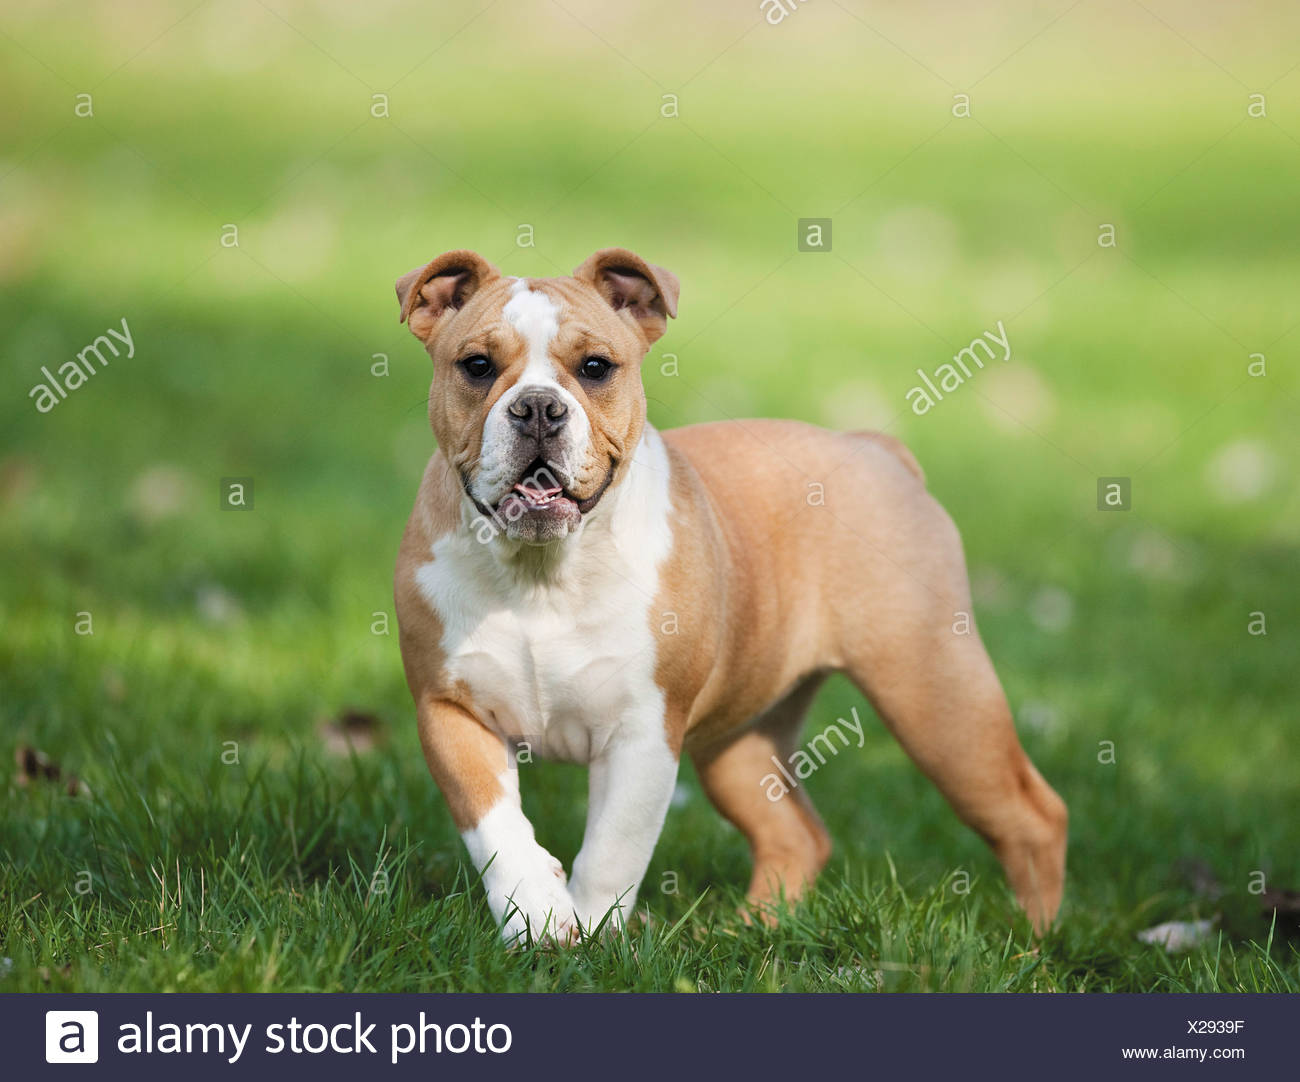 Continental Bulldog Puppies High Resolution Stock Photography And Images Alamy